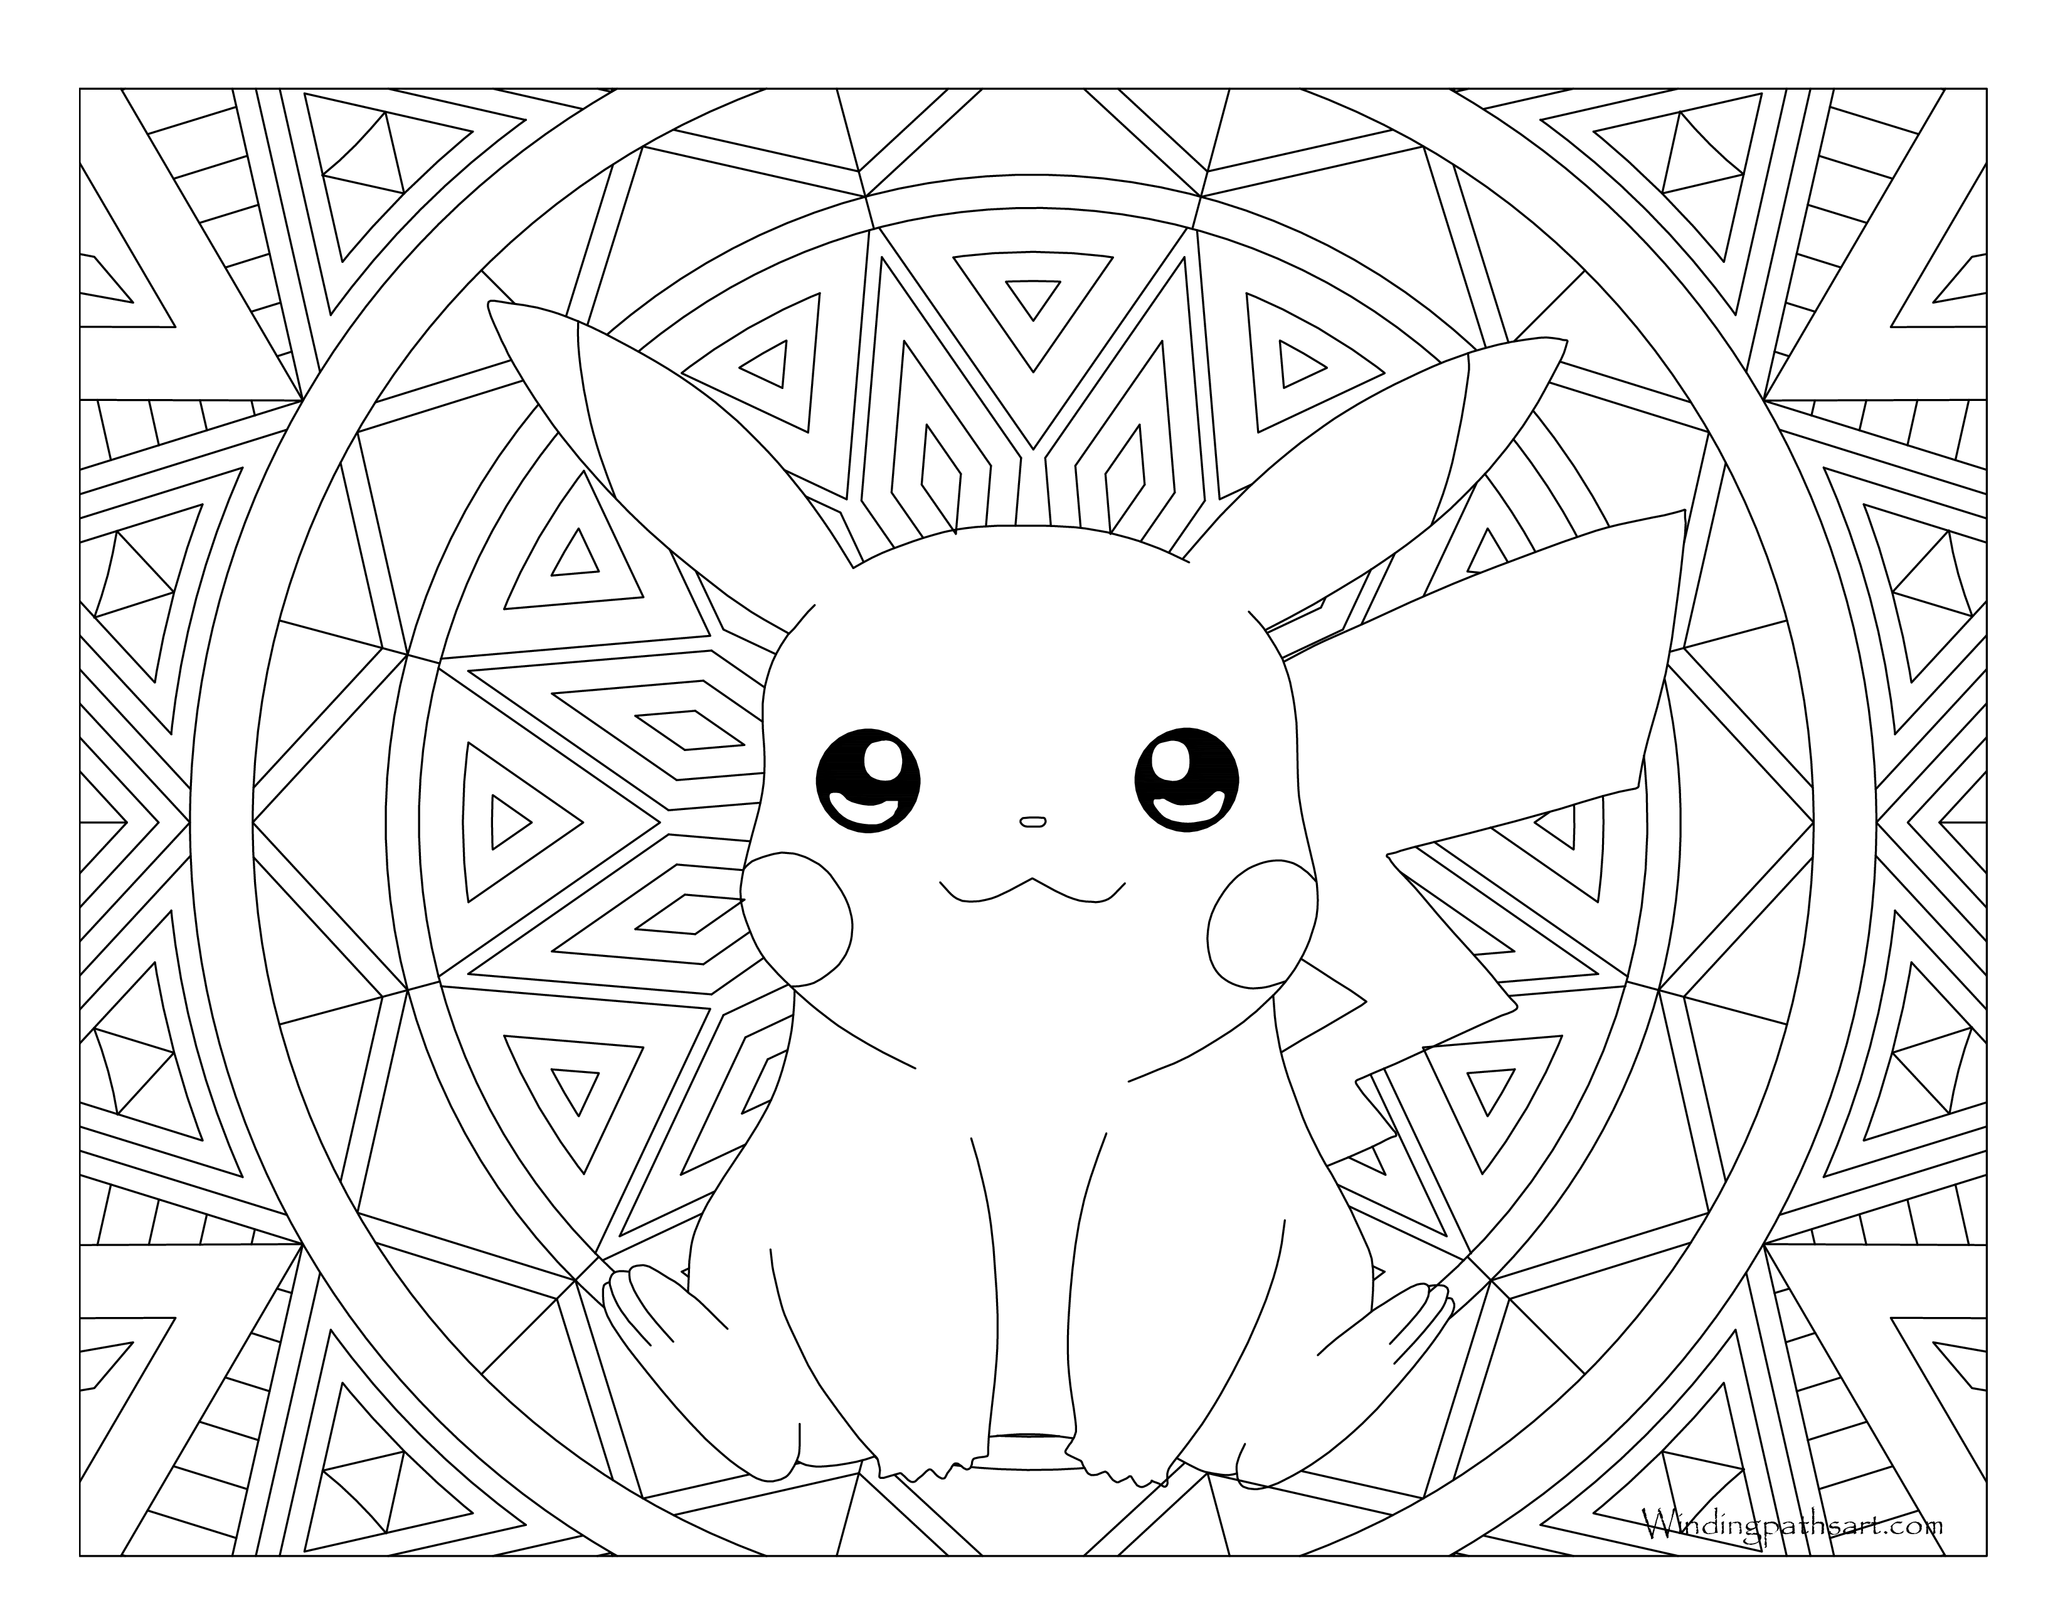 Pikachu coloring pages free printable - Free Printable Adult Pokemon Coloring Page Pikachu